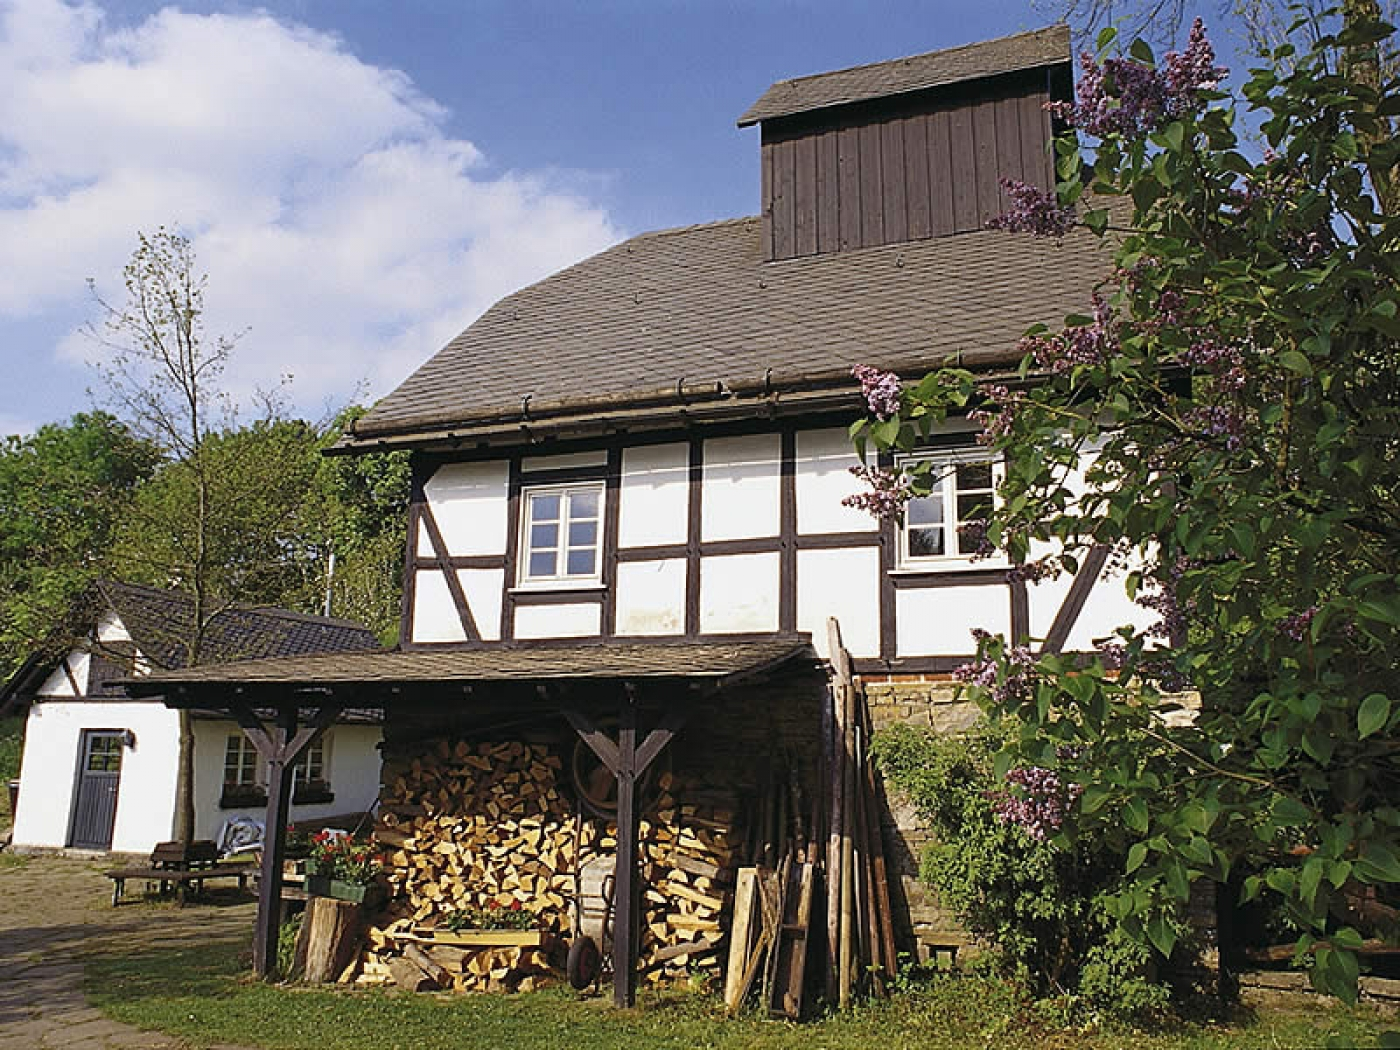 Alte Mühle bei Cobbenrode (Eslohe)